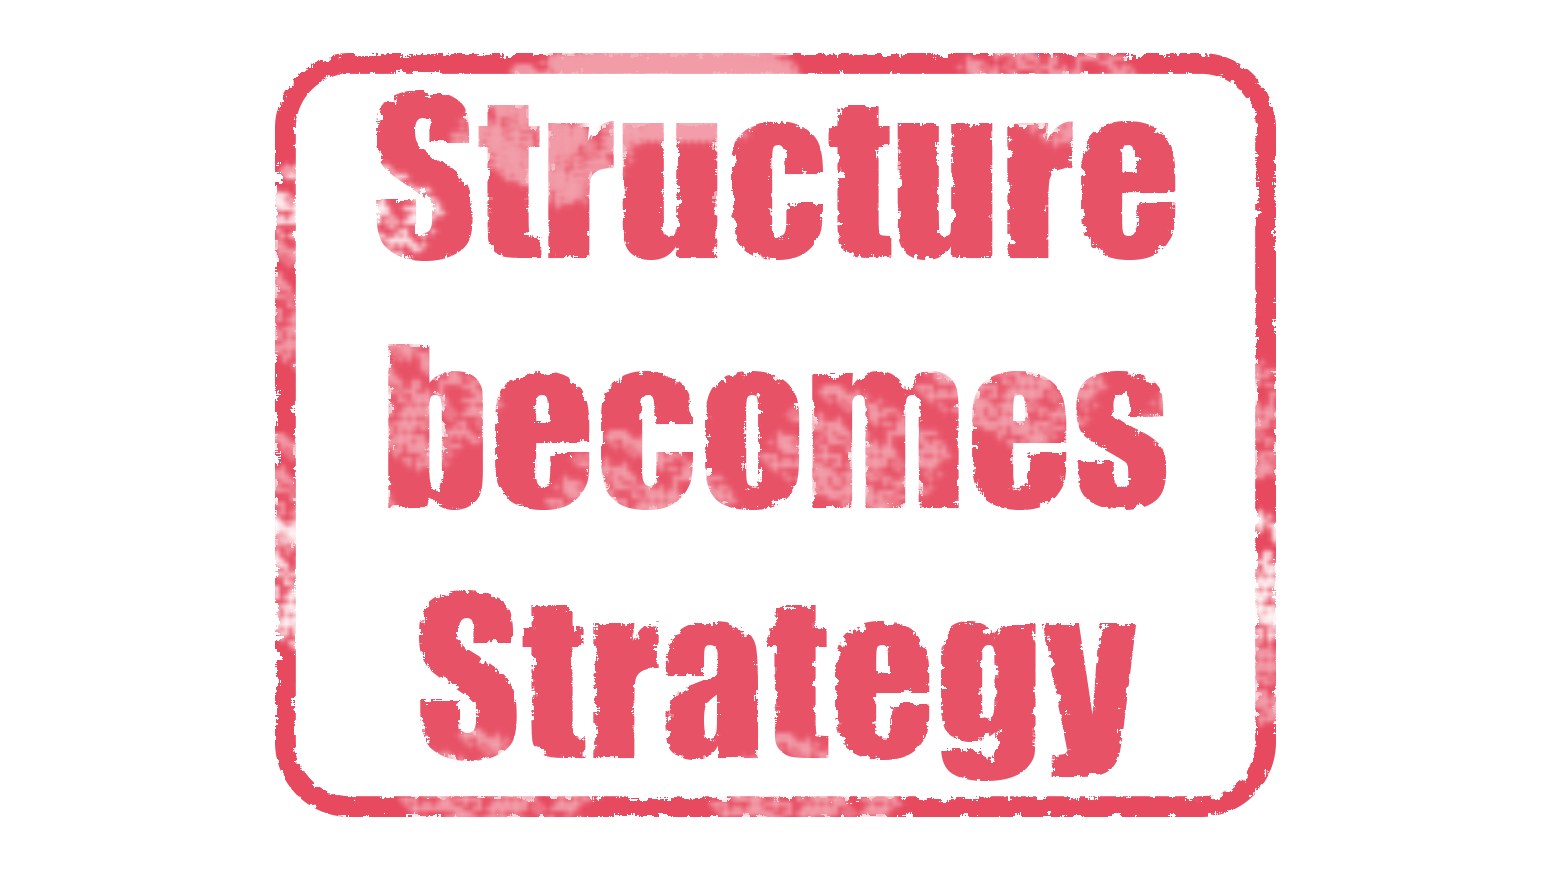 Structure becomes Strategy